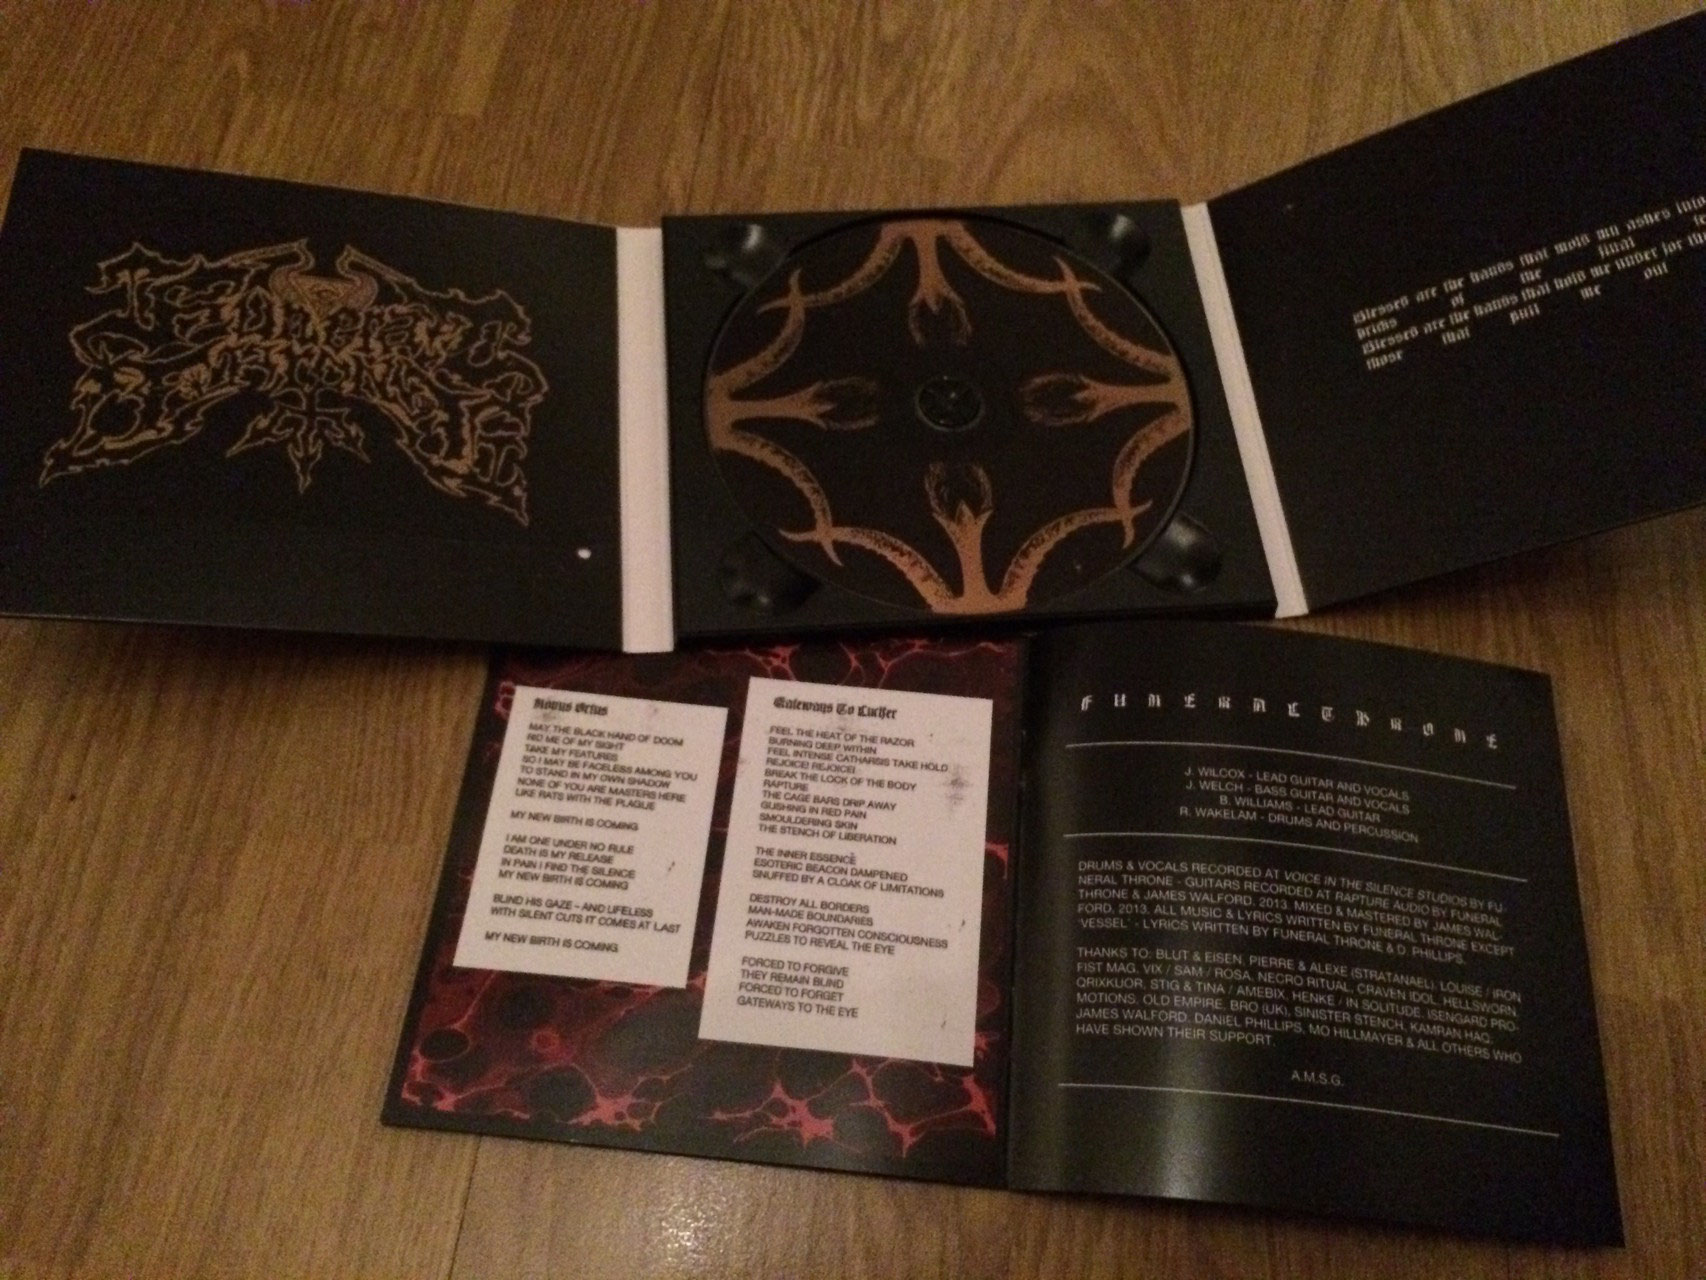 Funeral throne threshold blut eisen blackest metal stopboris Gallery